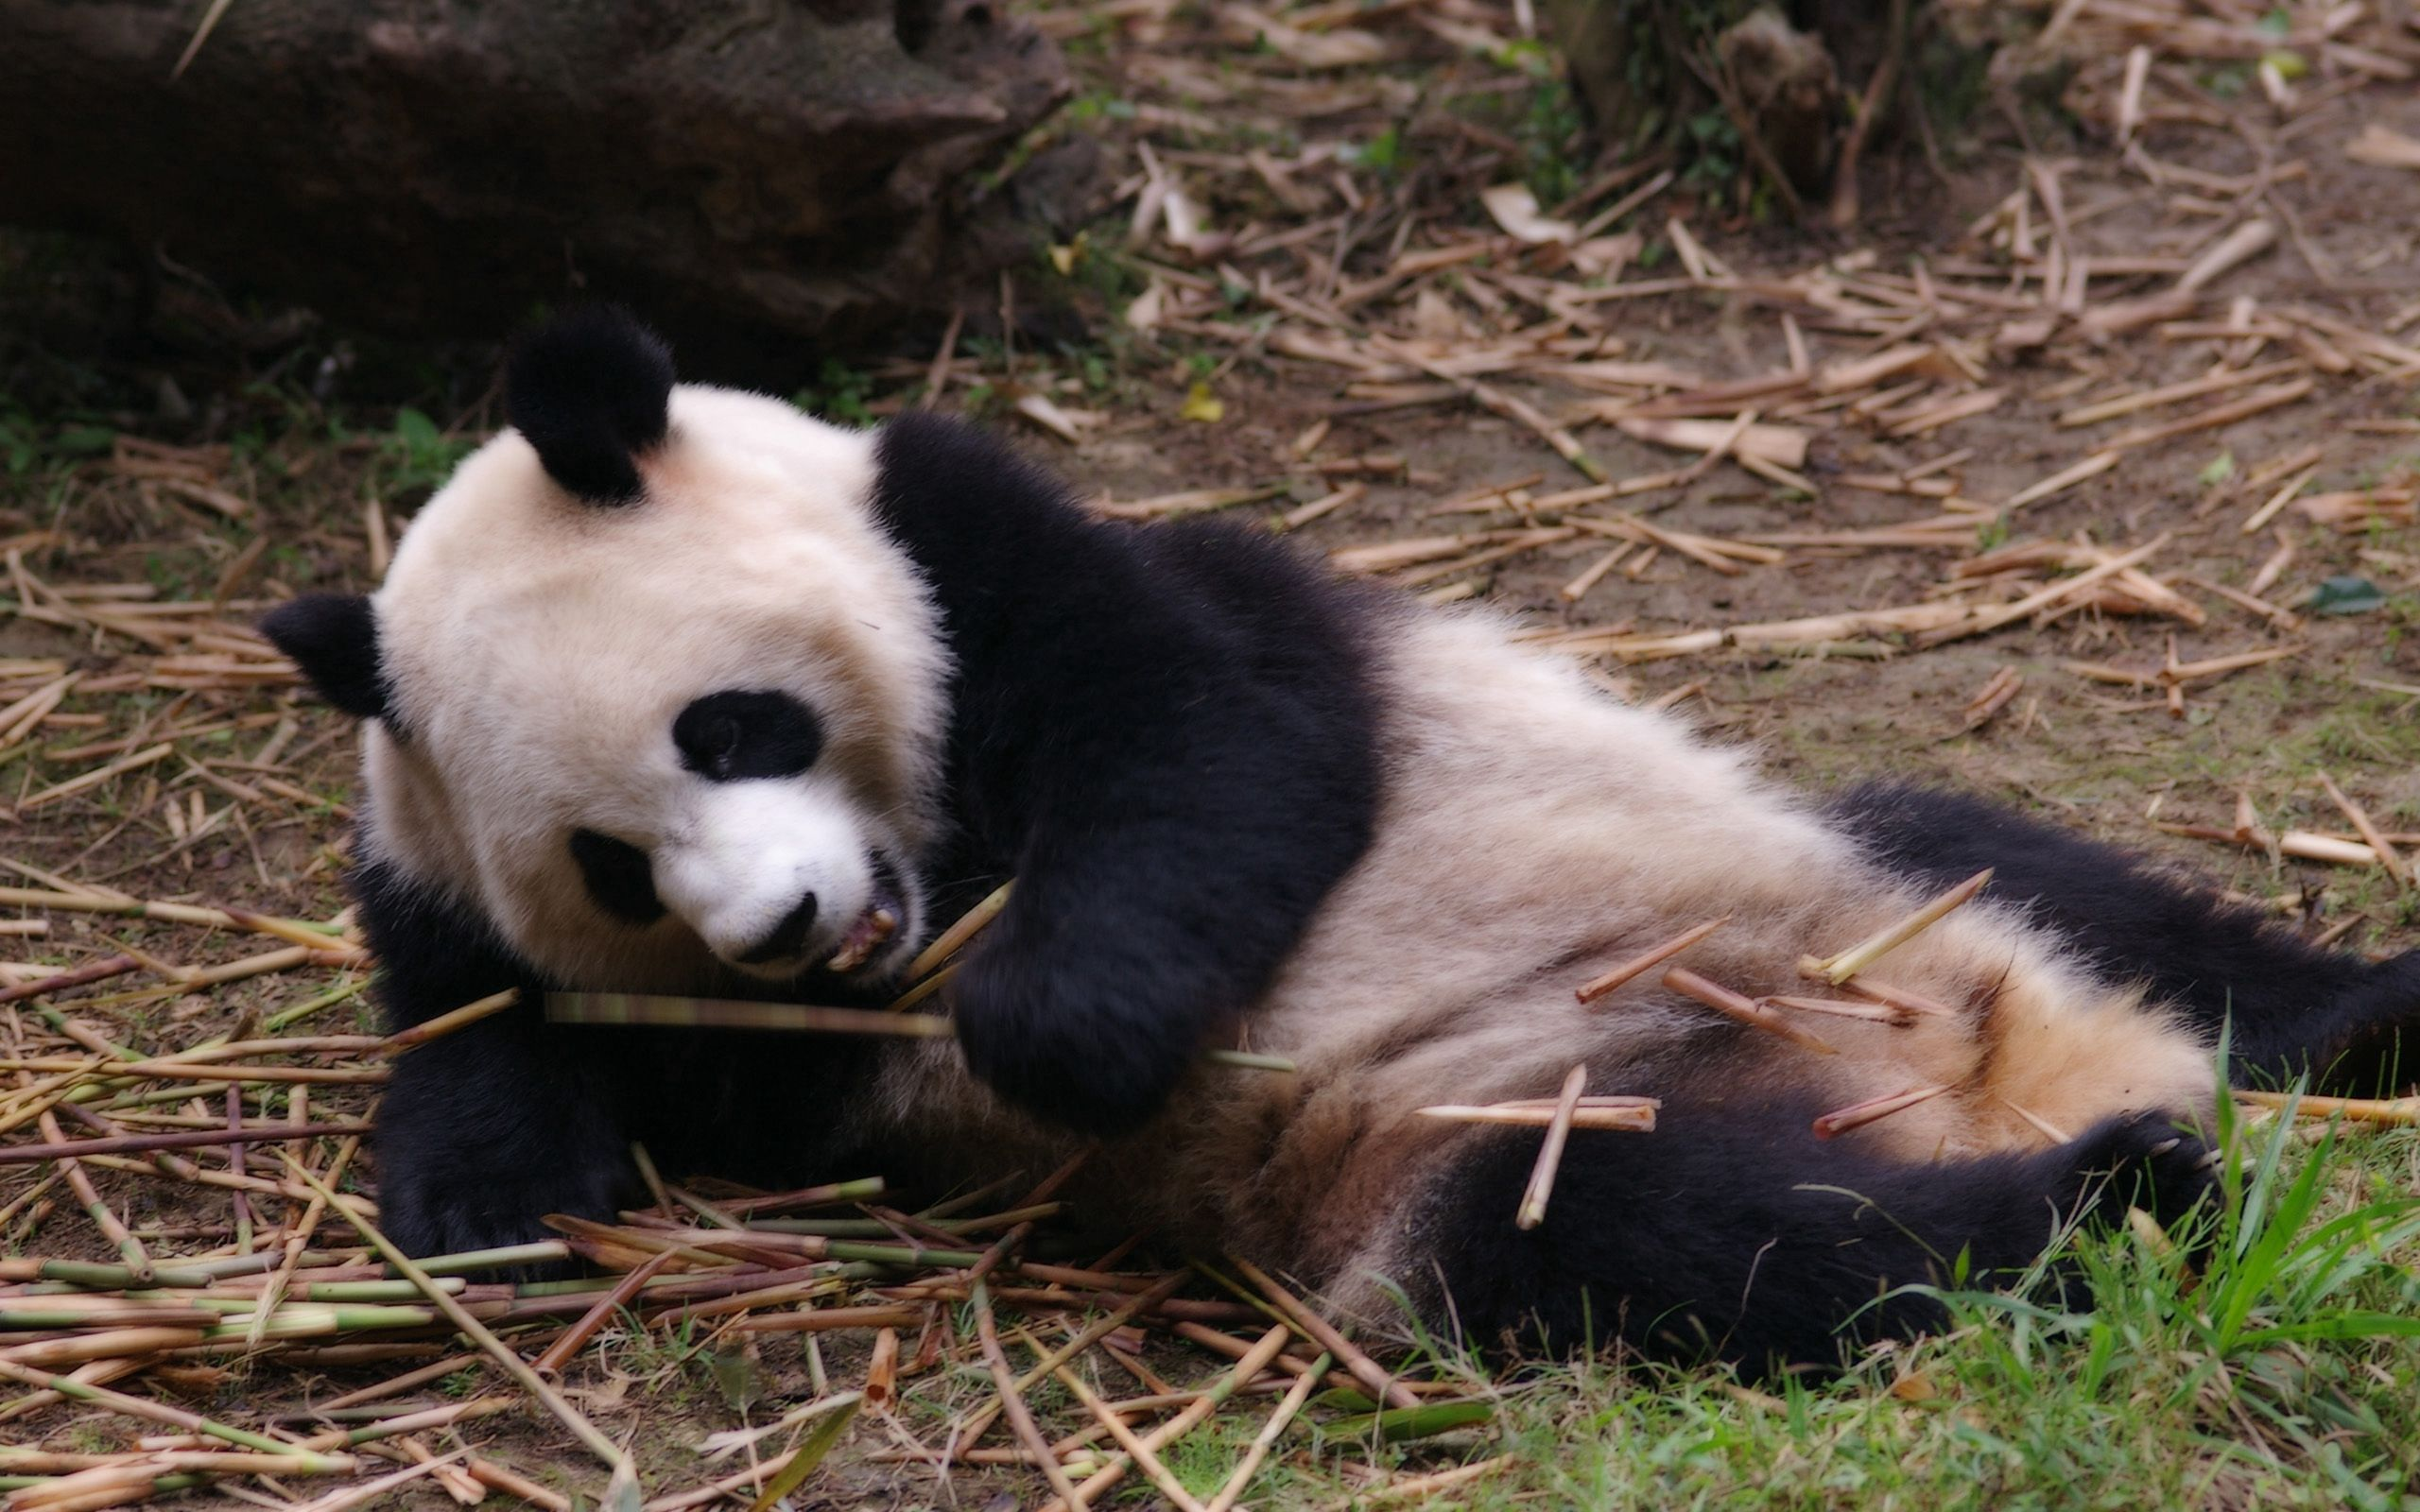 116551 download wallpaper Animals, Panda, Relaxation, Rest, Sleep, Dream, Branches screensavers and pictures for free